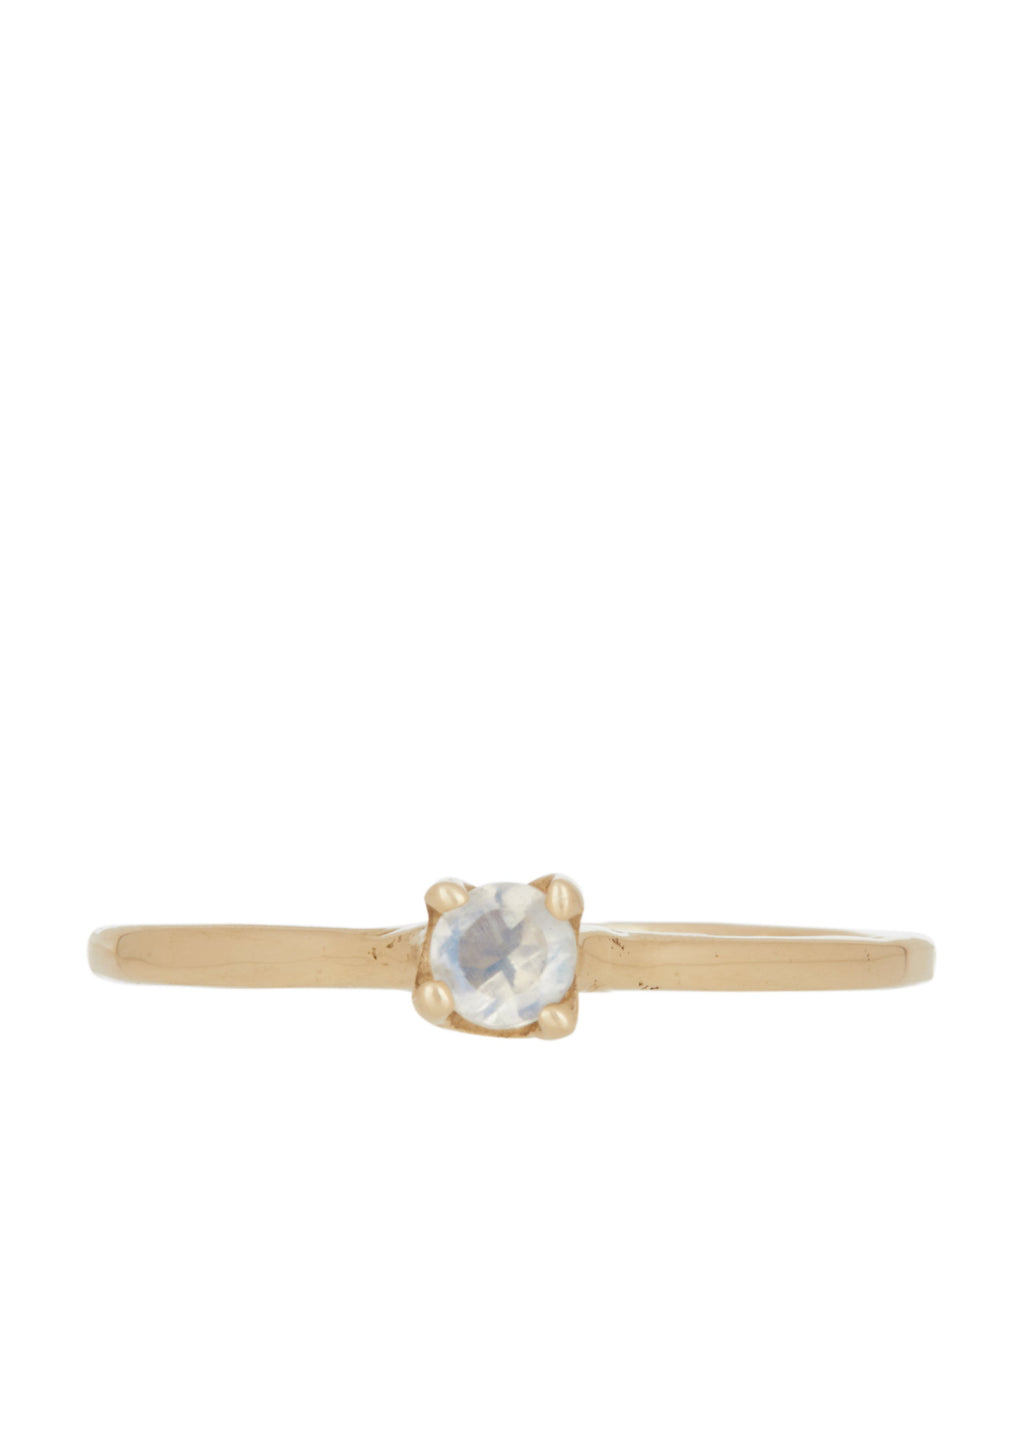 Palace Ring - Moonstone